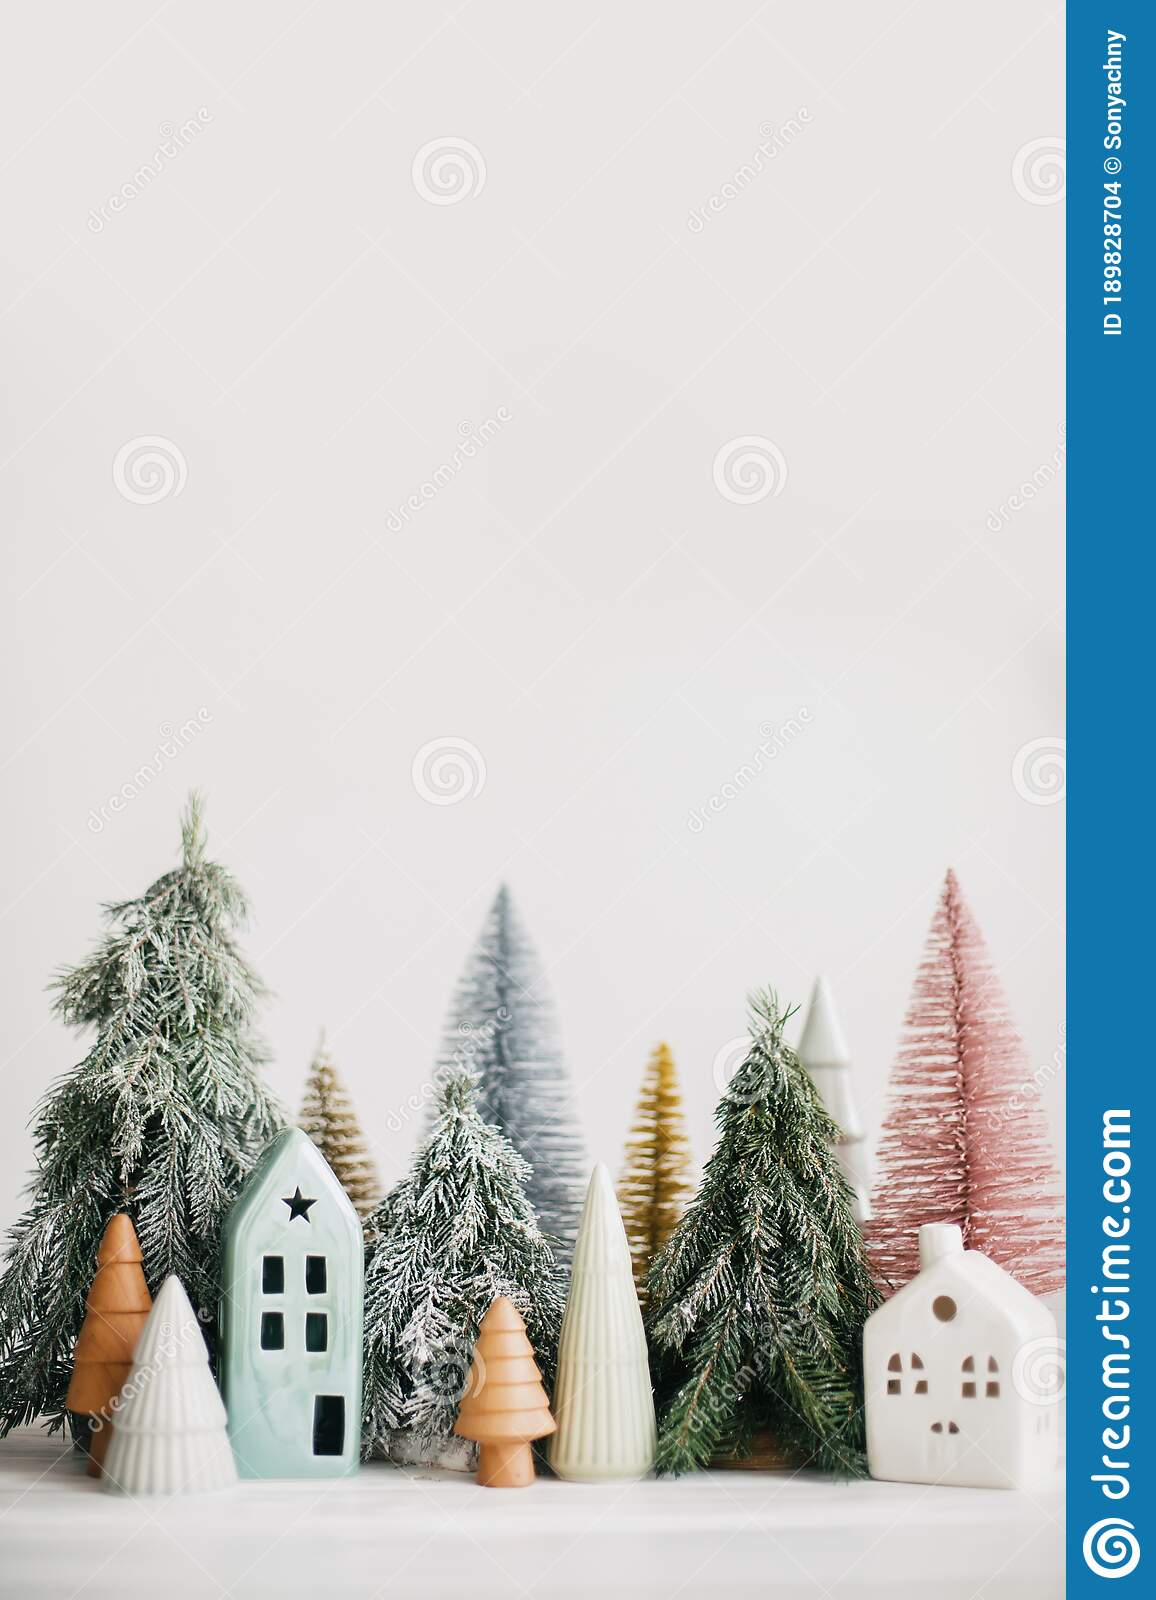 Christmas Little Houses And Trees On White Background Festive Modern Decor Happy Holidays Miniature Cozy Village Ceramic Stock Photo Image Of Vertical Background 189828704